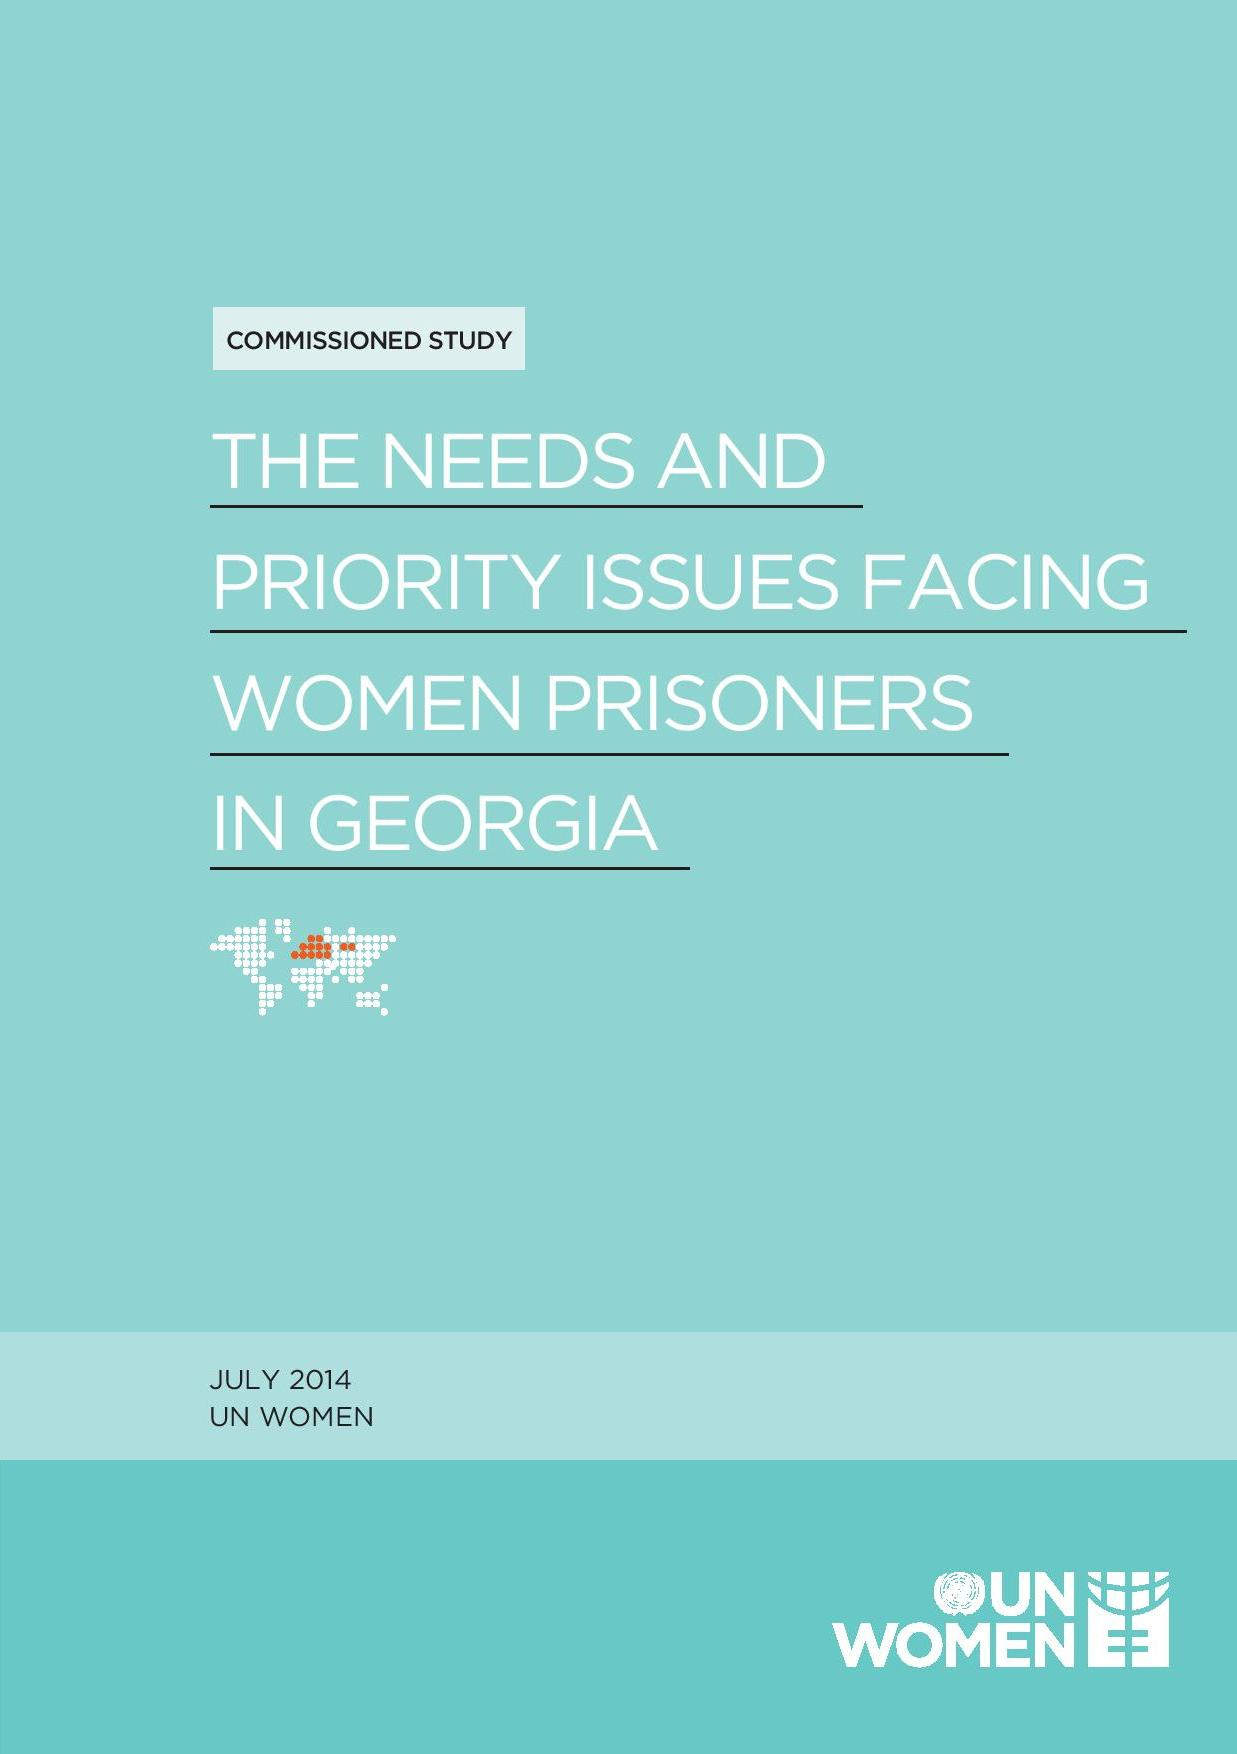 Needs and Priority issues of women prisoners in Georgia